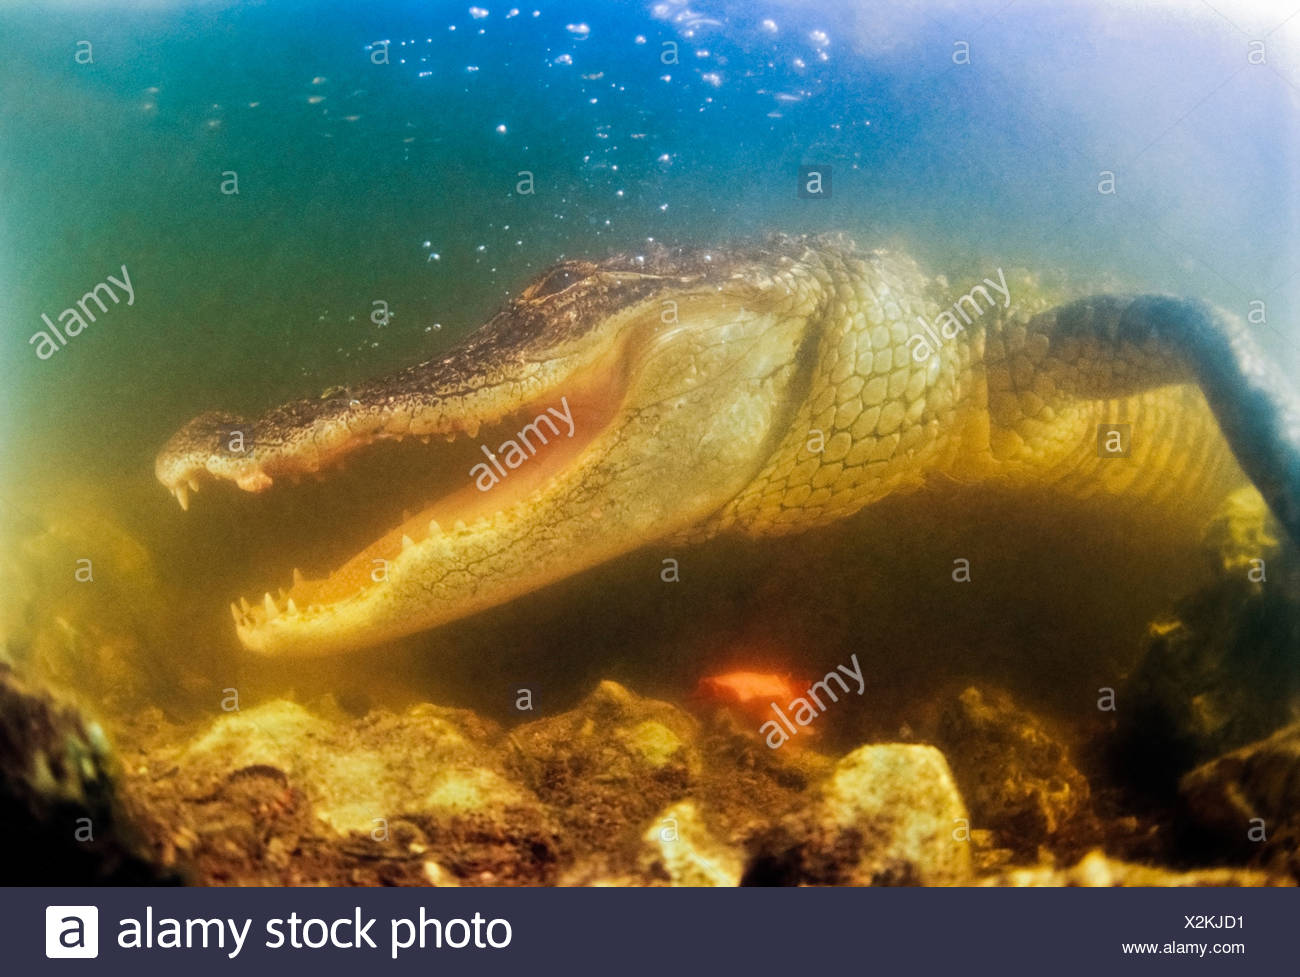 American Alligator with Jaws agape - Stock Image